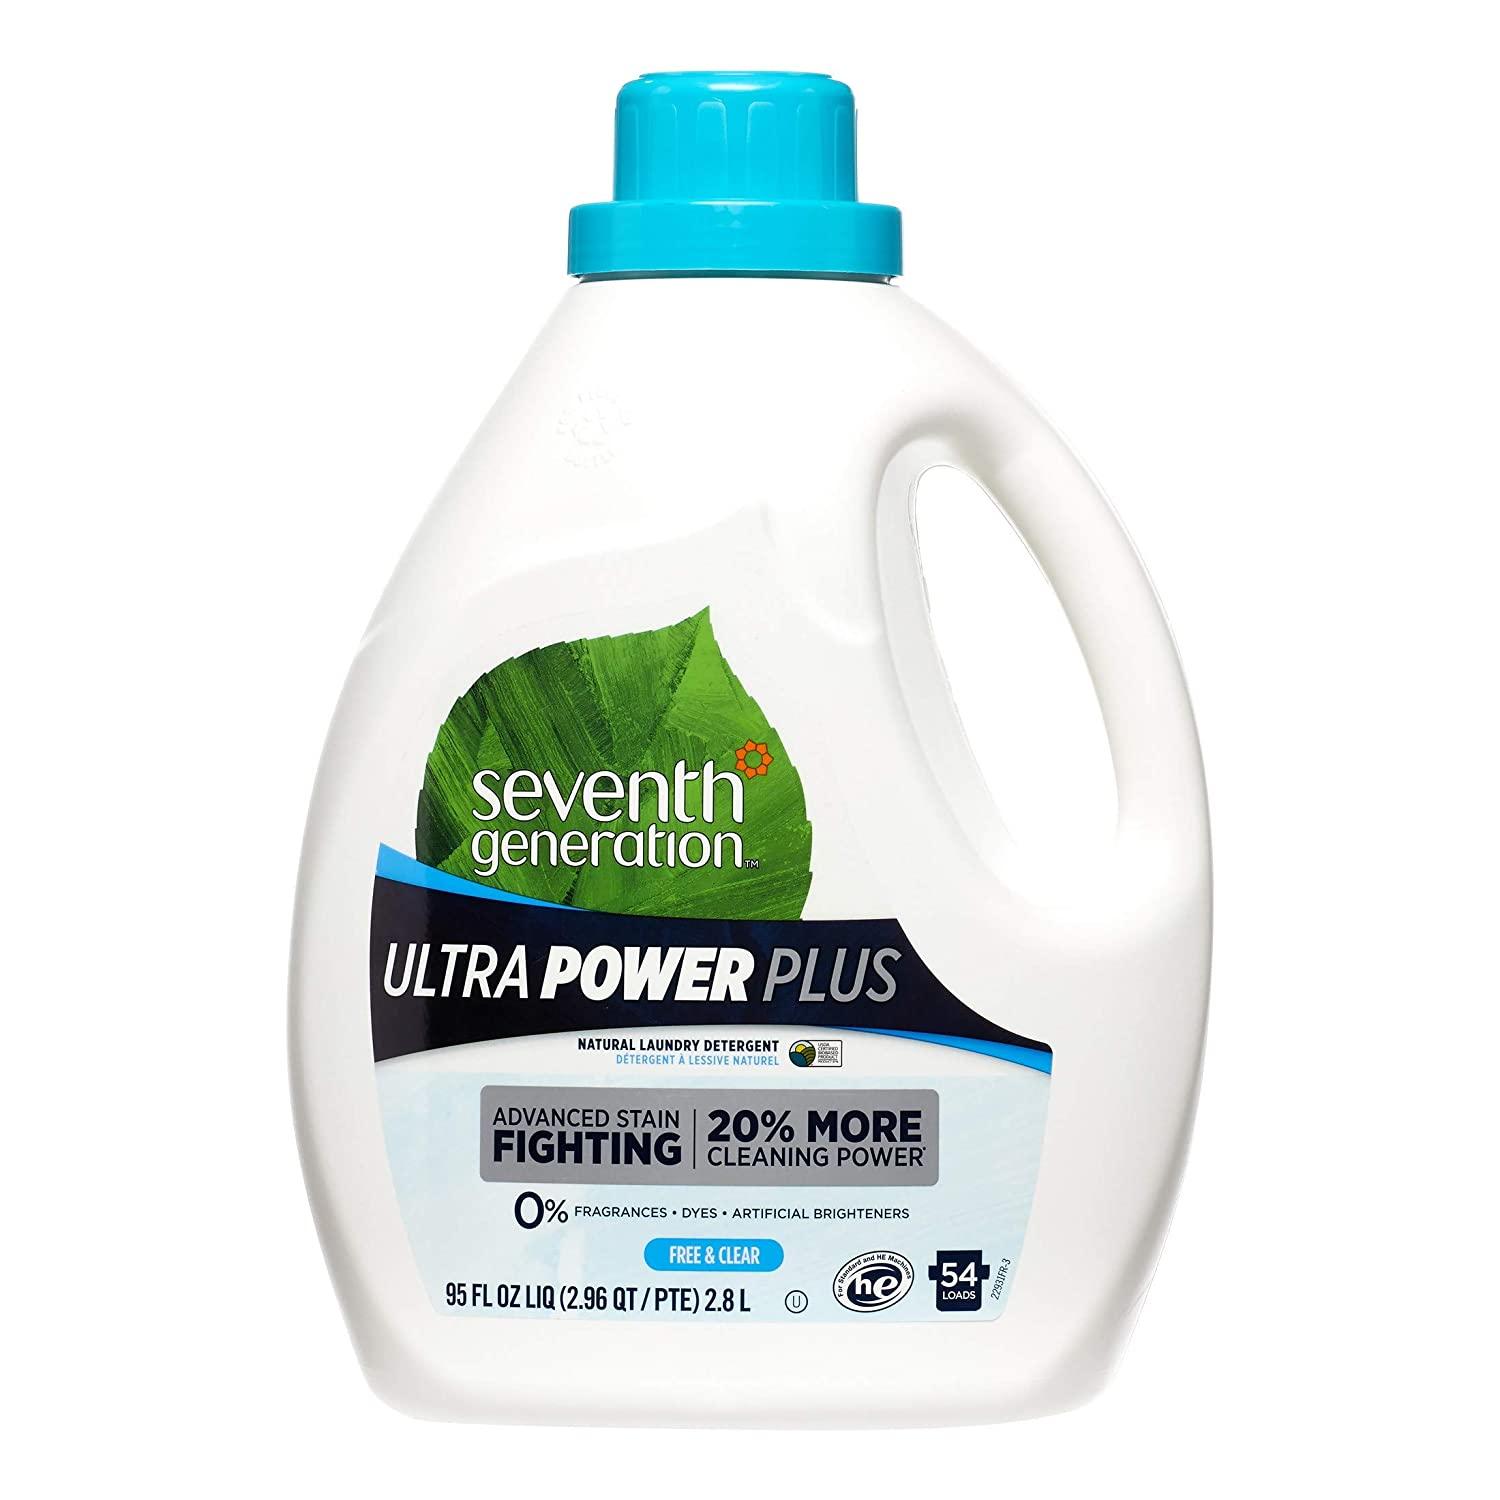 Seventh Generation Ultra Power Plus Liquid Laundry Detergent, Fragrance Free, 54 Loads, 95 oz